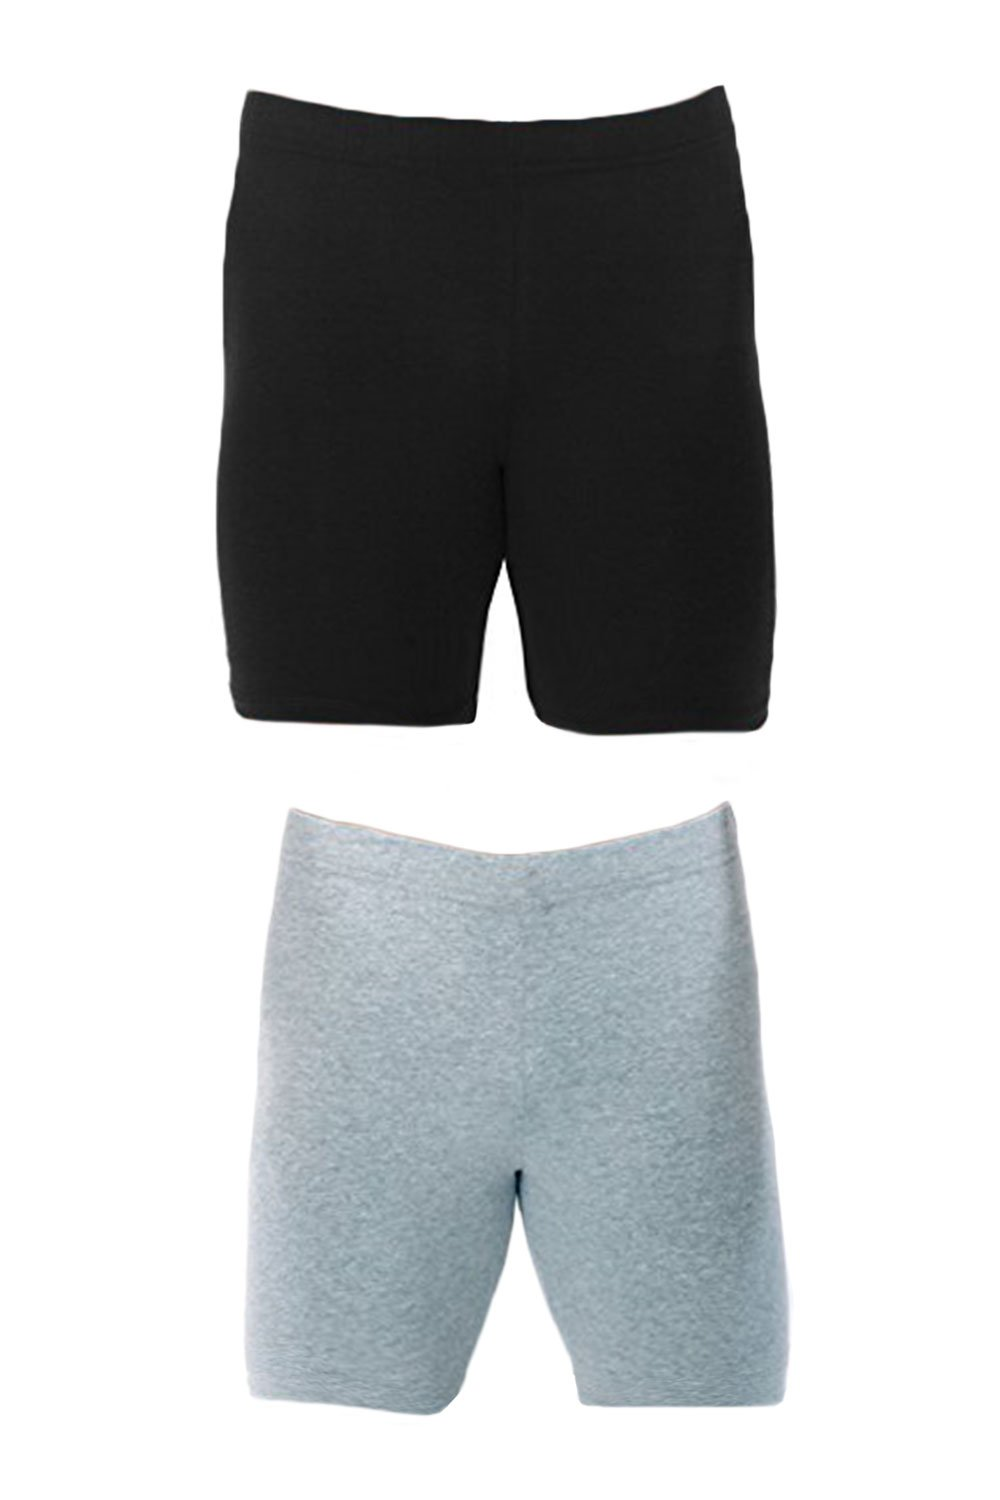 Men's Extreme Core-Champion True Double Dry Compression Short (Small, 2 Pack Grey/Black)